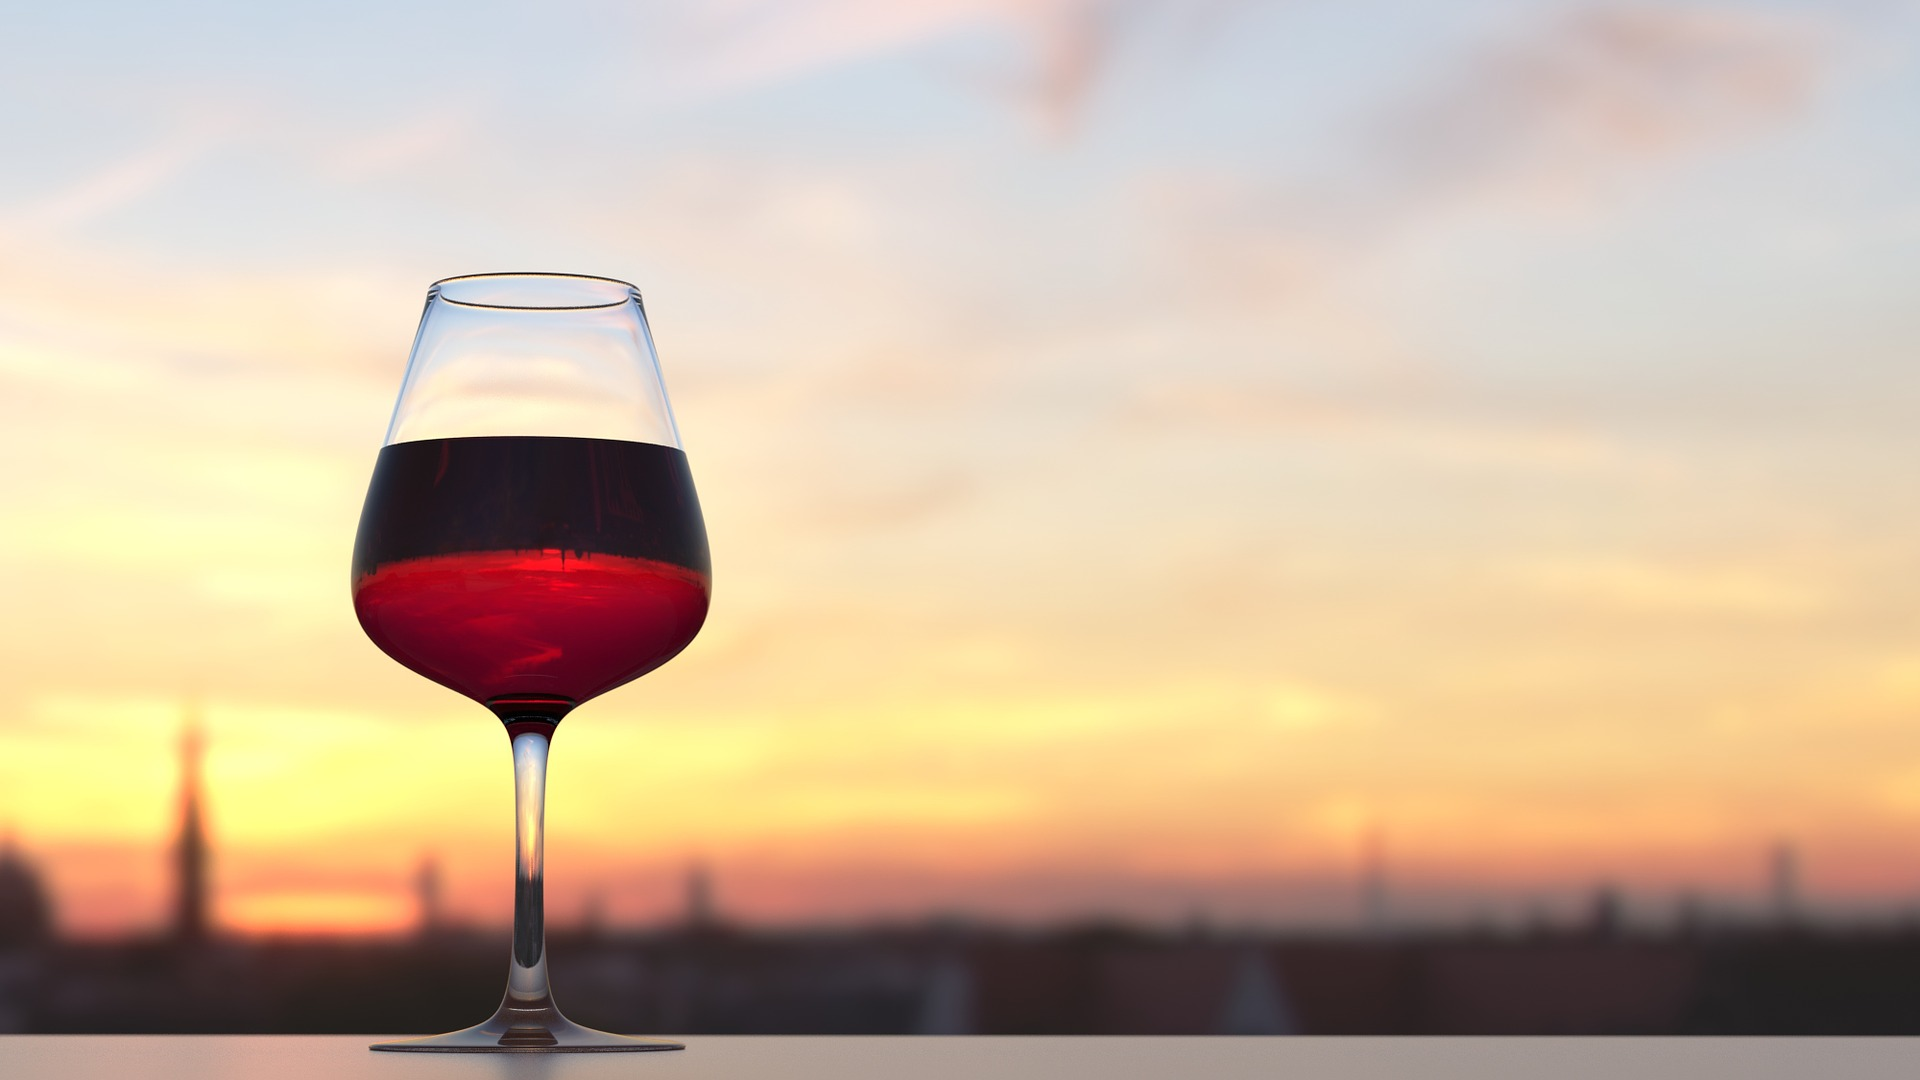 Red wine good for treating depression, anxiety